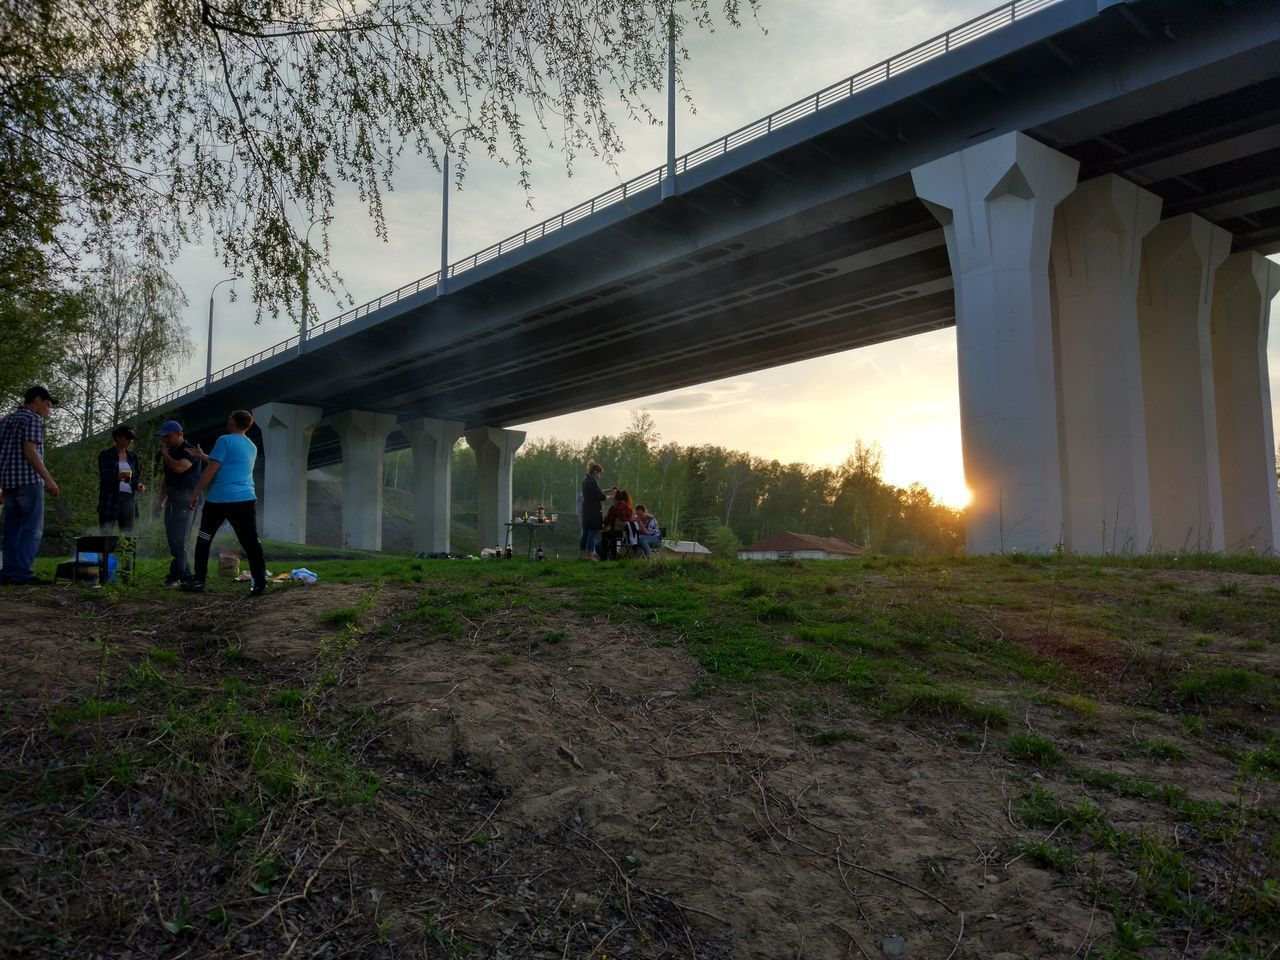 Bridge - Man Made Structure People Outdoors Nature The Week On EyeEem Green Color Новосибирск Novosibirsk Bridge Rest мост отдых Природа